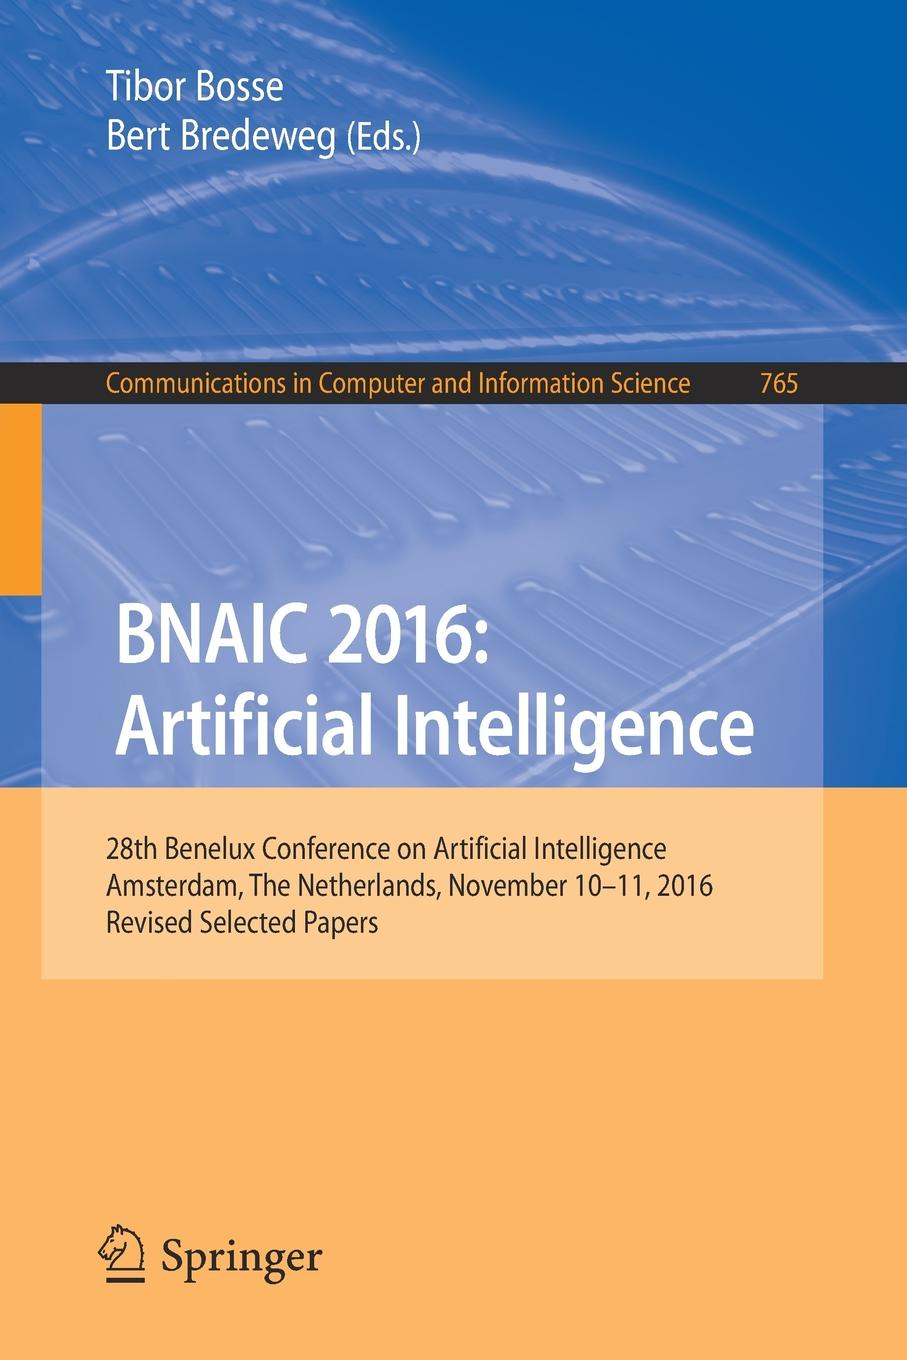 BNAIC 2016. Artificial Intelligence : 28th Benelux Conference on Artificial Intelligence, Amsterdam, The Netherlands, November 10-11, 2016, Revised Selected Papers велосипед electra amsterdam classic 3i mens 2016